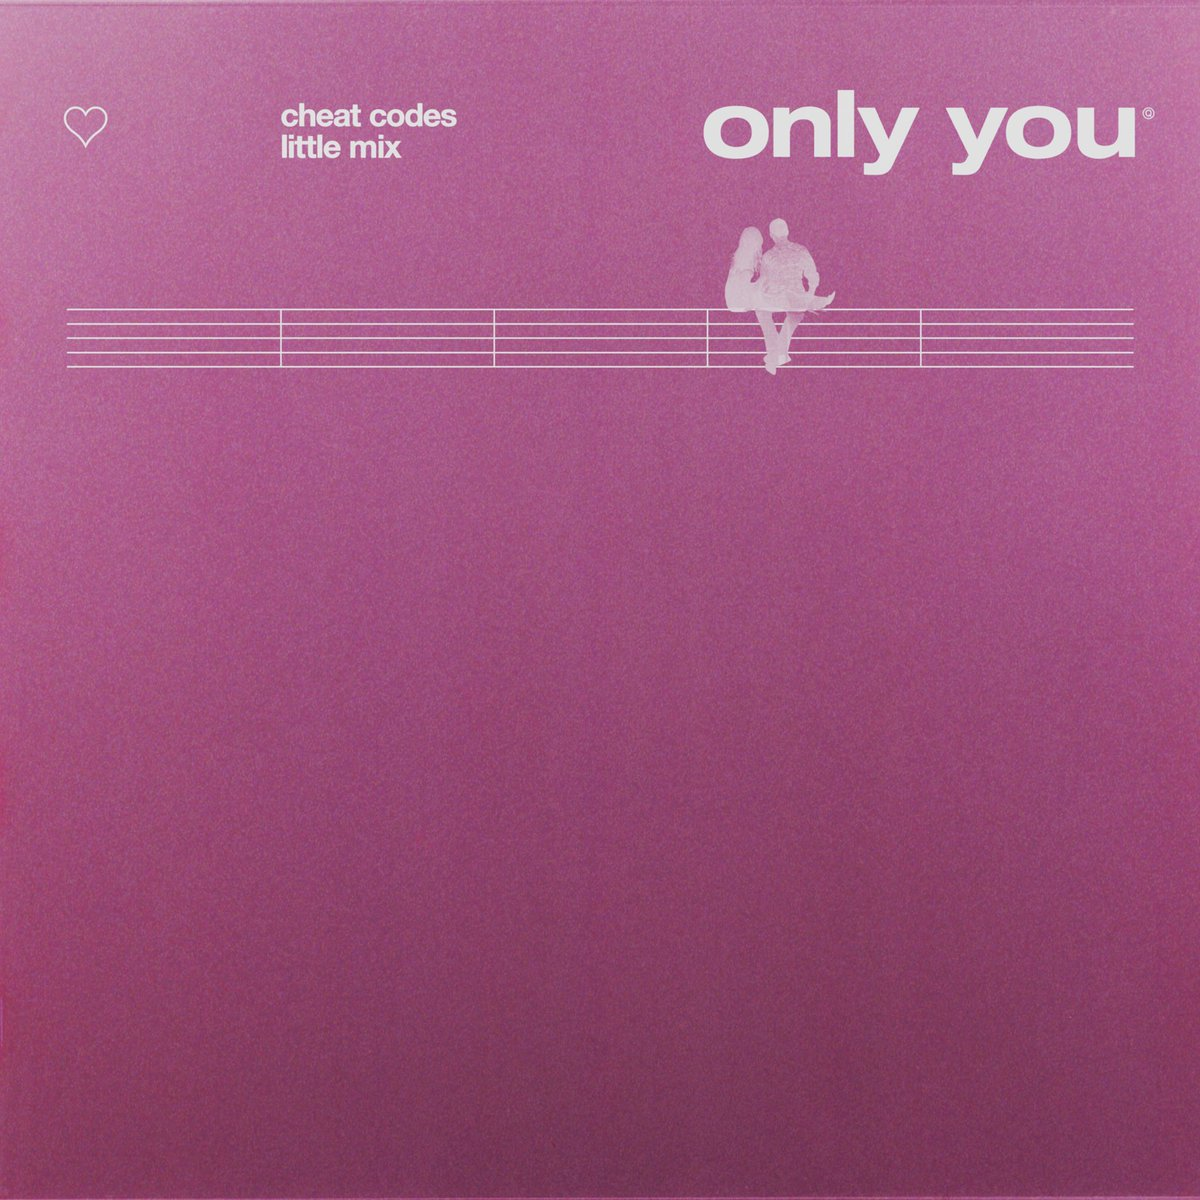 We are so excited for this one! @CheatCodesMusic x Little Mix #OnlyYou is coming THIS FRIDAY! 22.06.18 🧜♀️ Are you ready? xx the girls xx